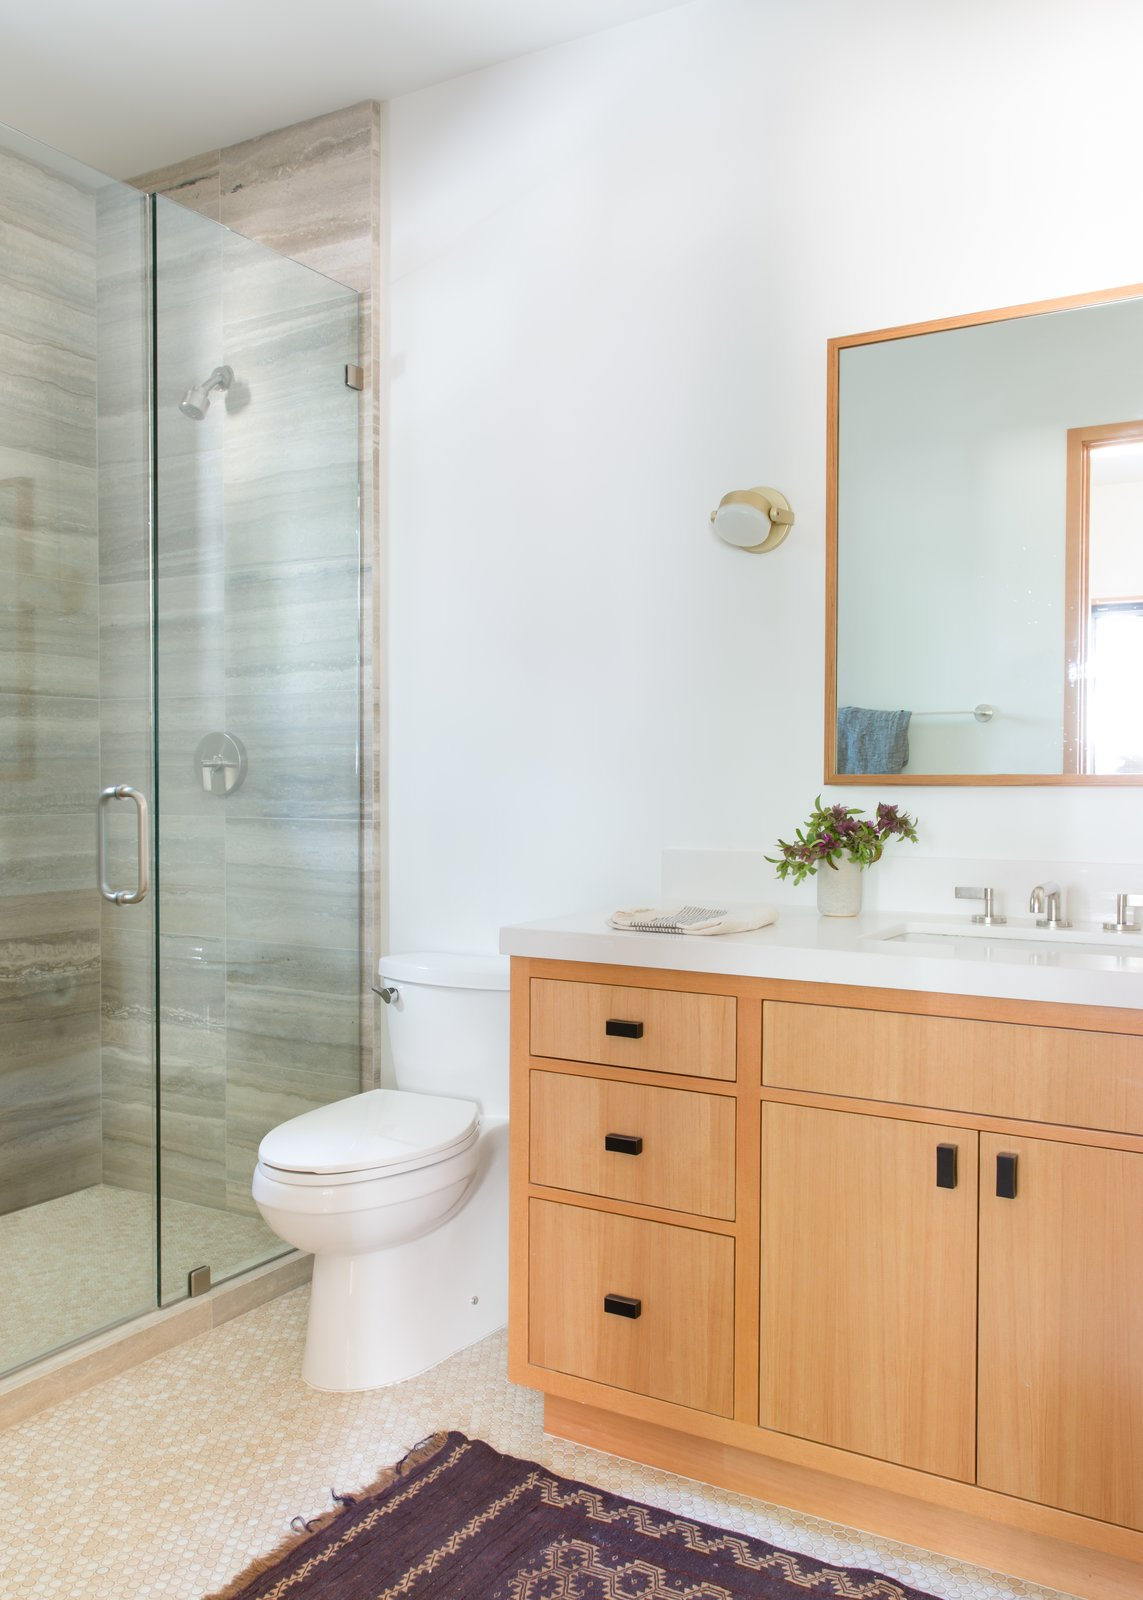 Bath Room, Ceramic Tile Floor, Wall Lighting, Enclosed Shower, One Piece Toilet, Wood Counter, and Undermount Sink  Woodsy Tahoe Cabin by Regan Baker Design